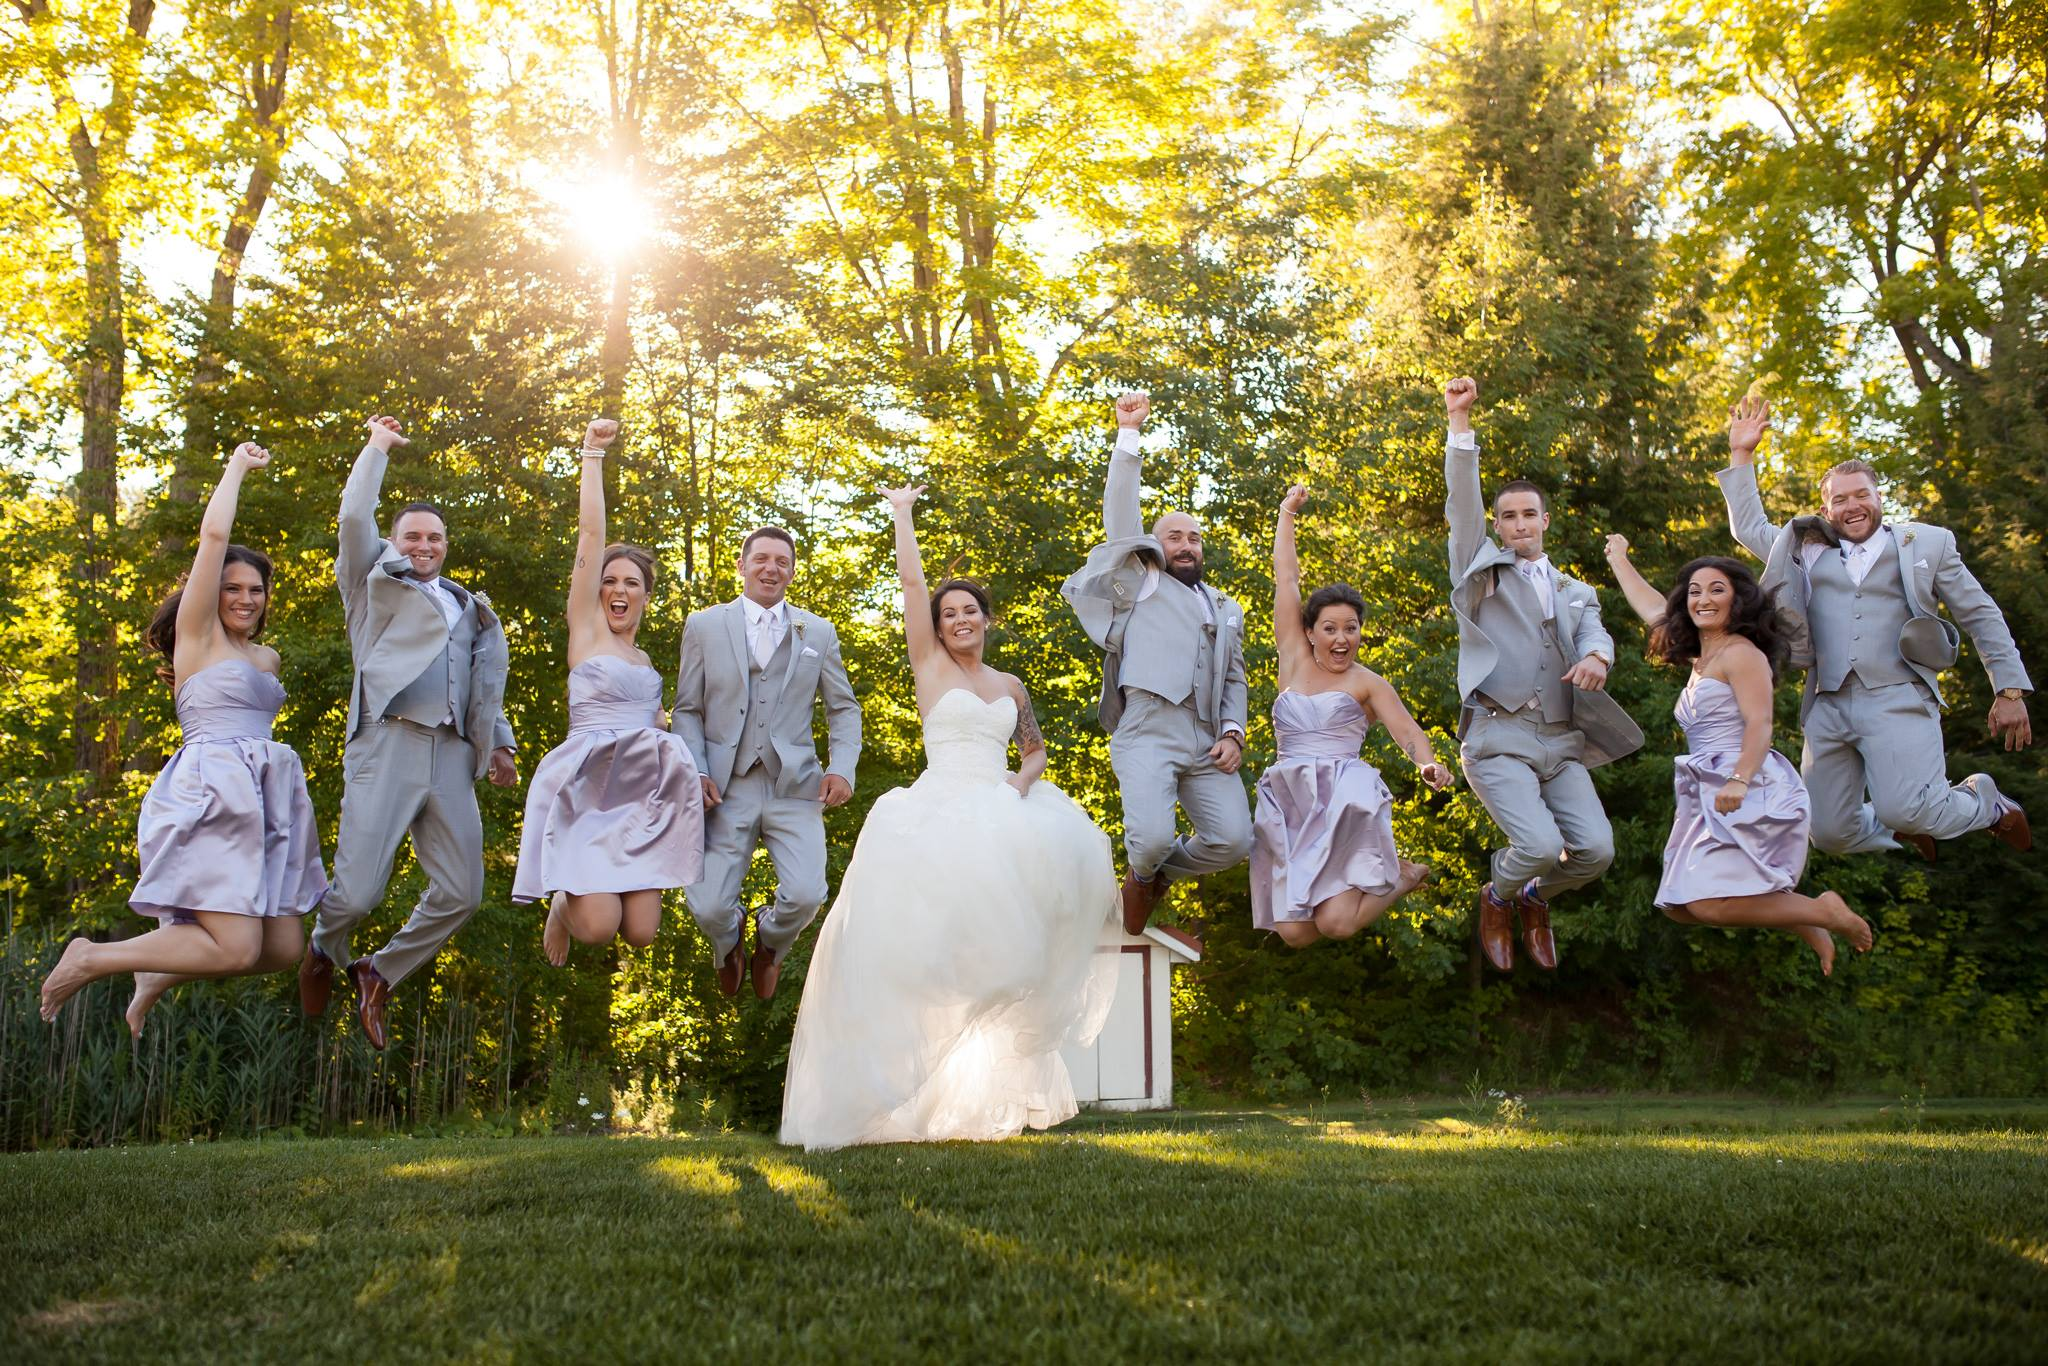 8 Best Wedding Photographers in Stouffville